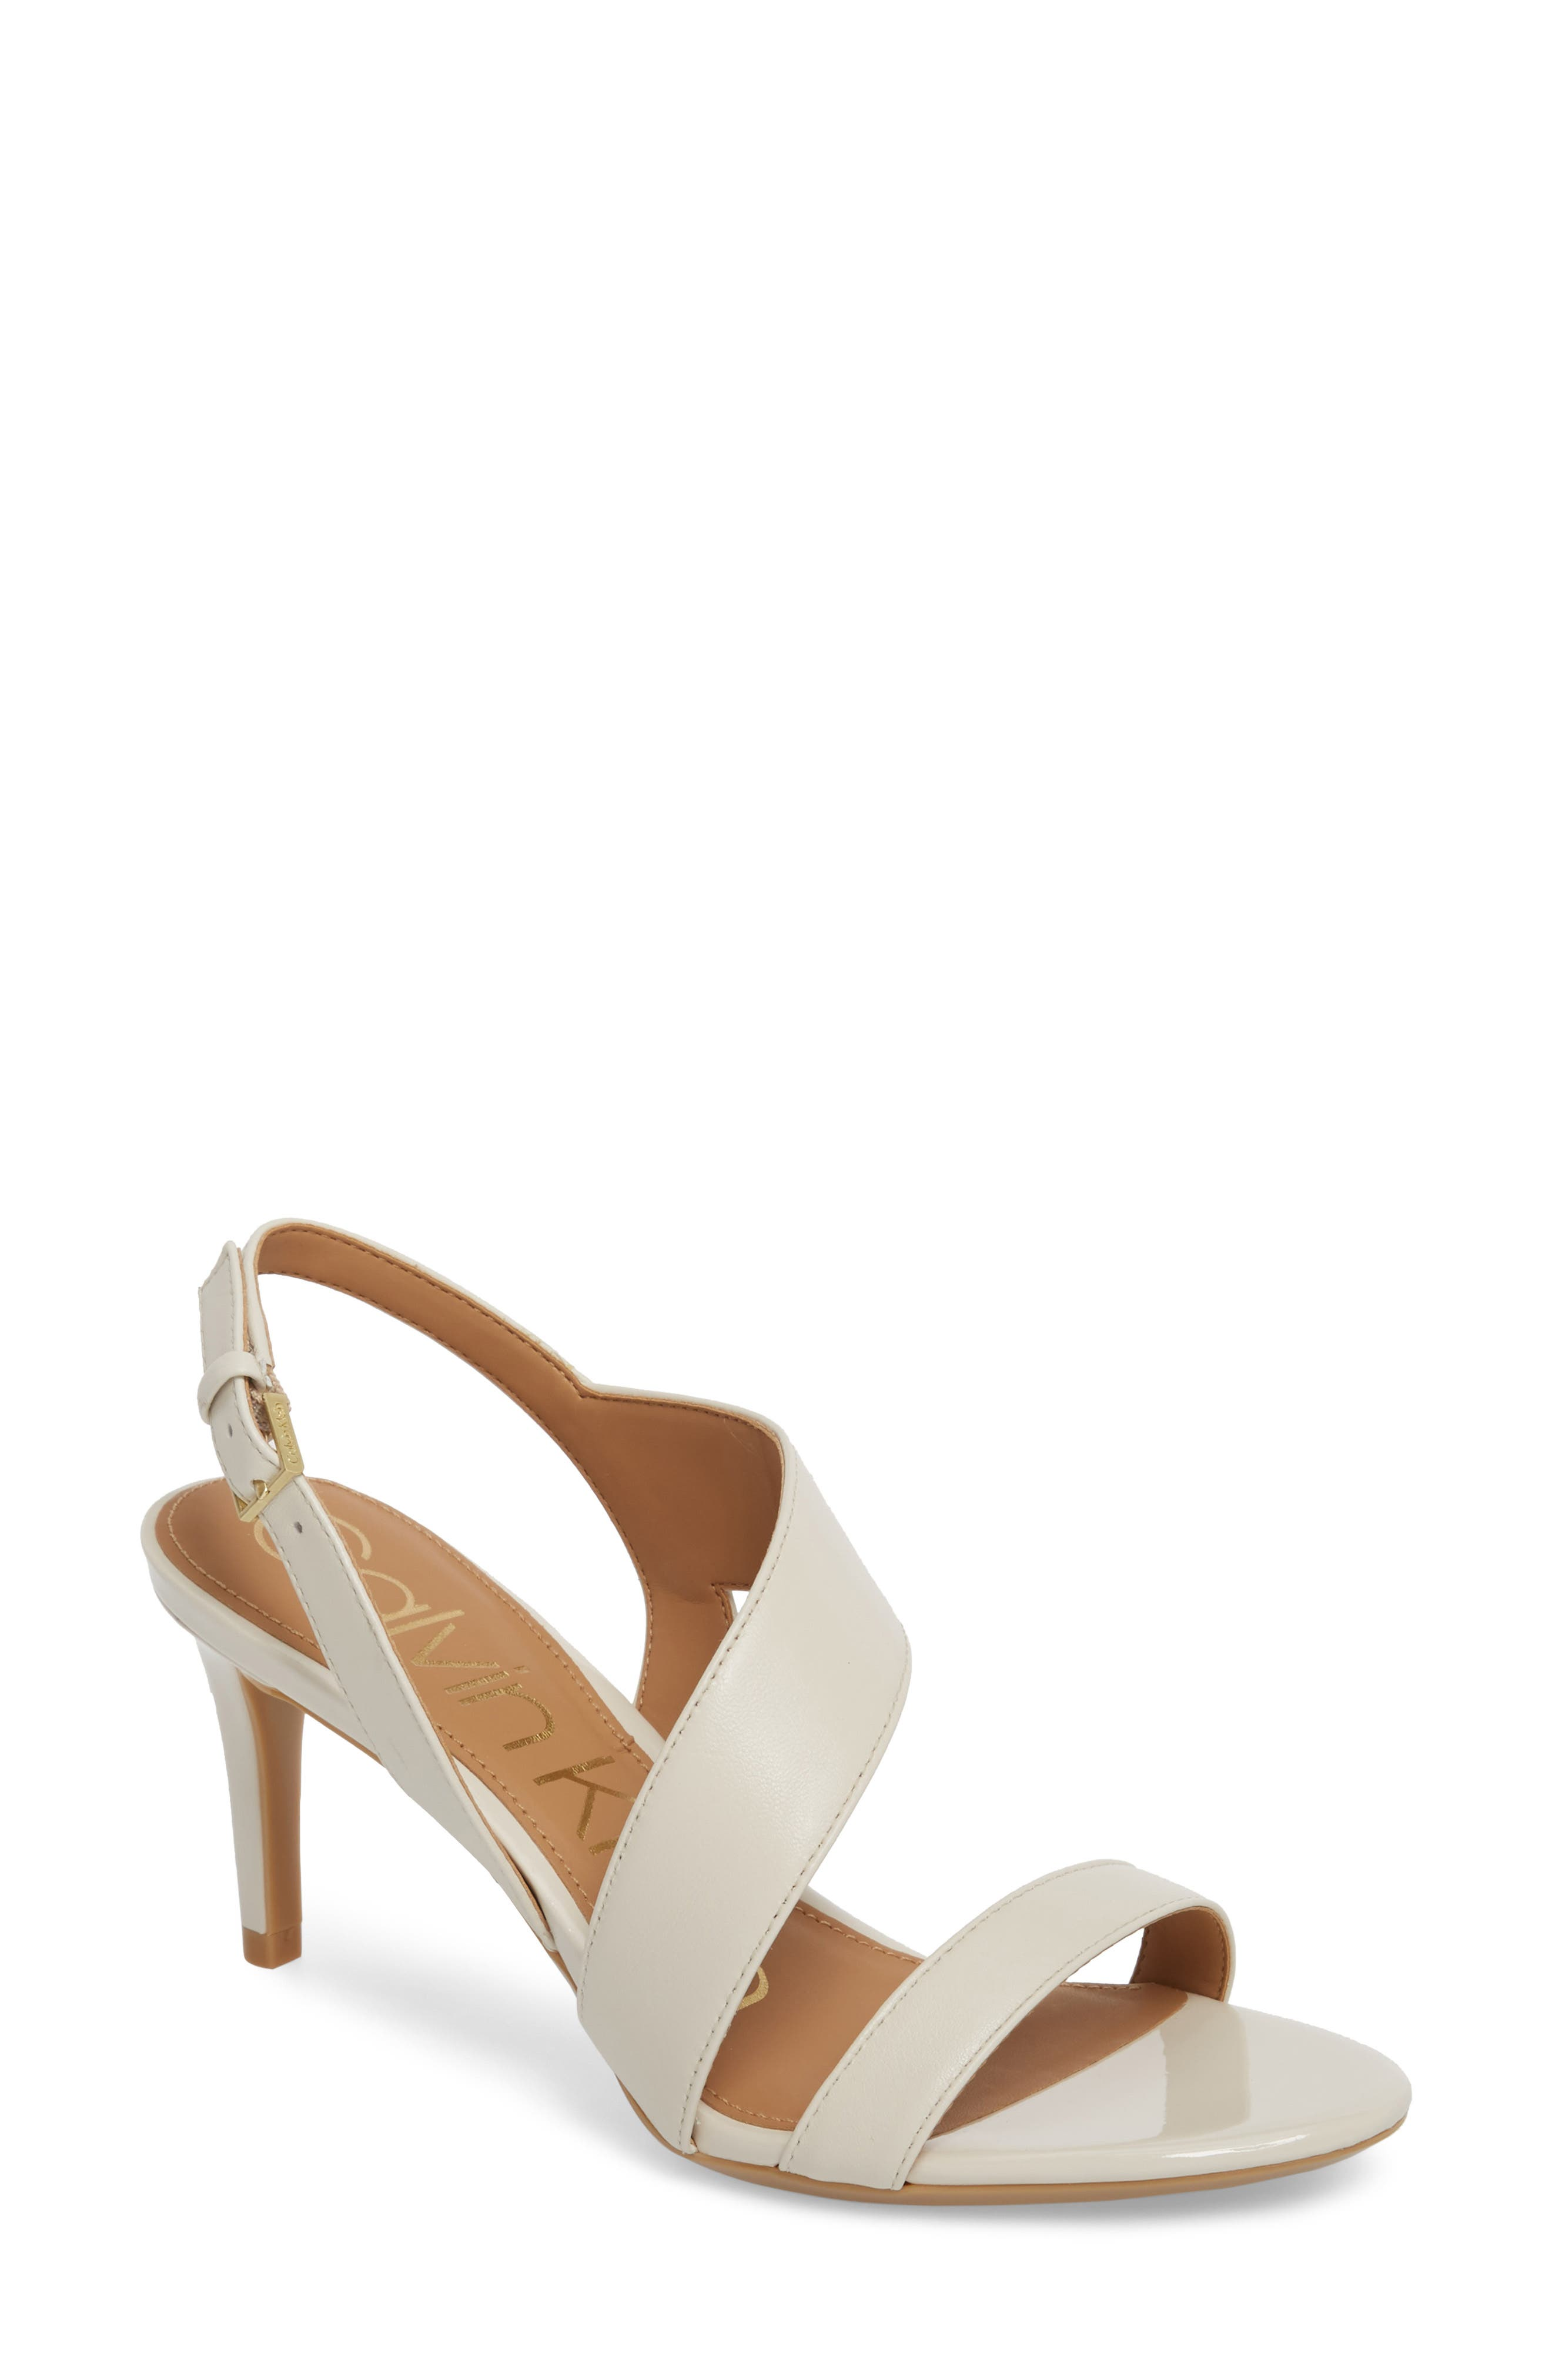 Lancy Sandal,                         Main,                         color, Soft White Leather